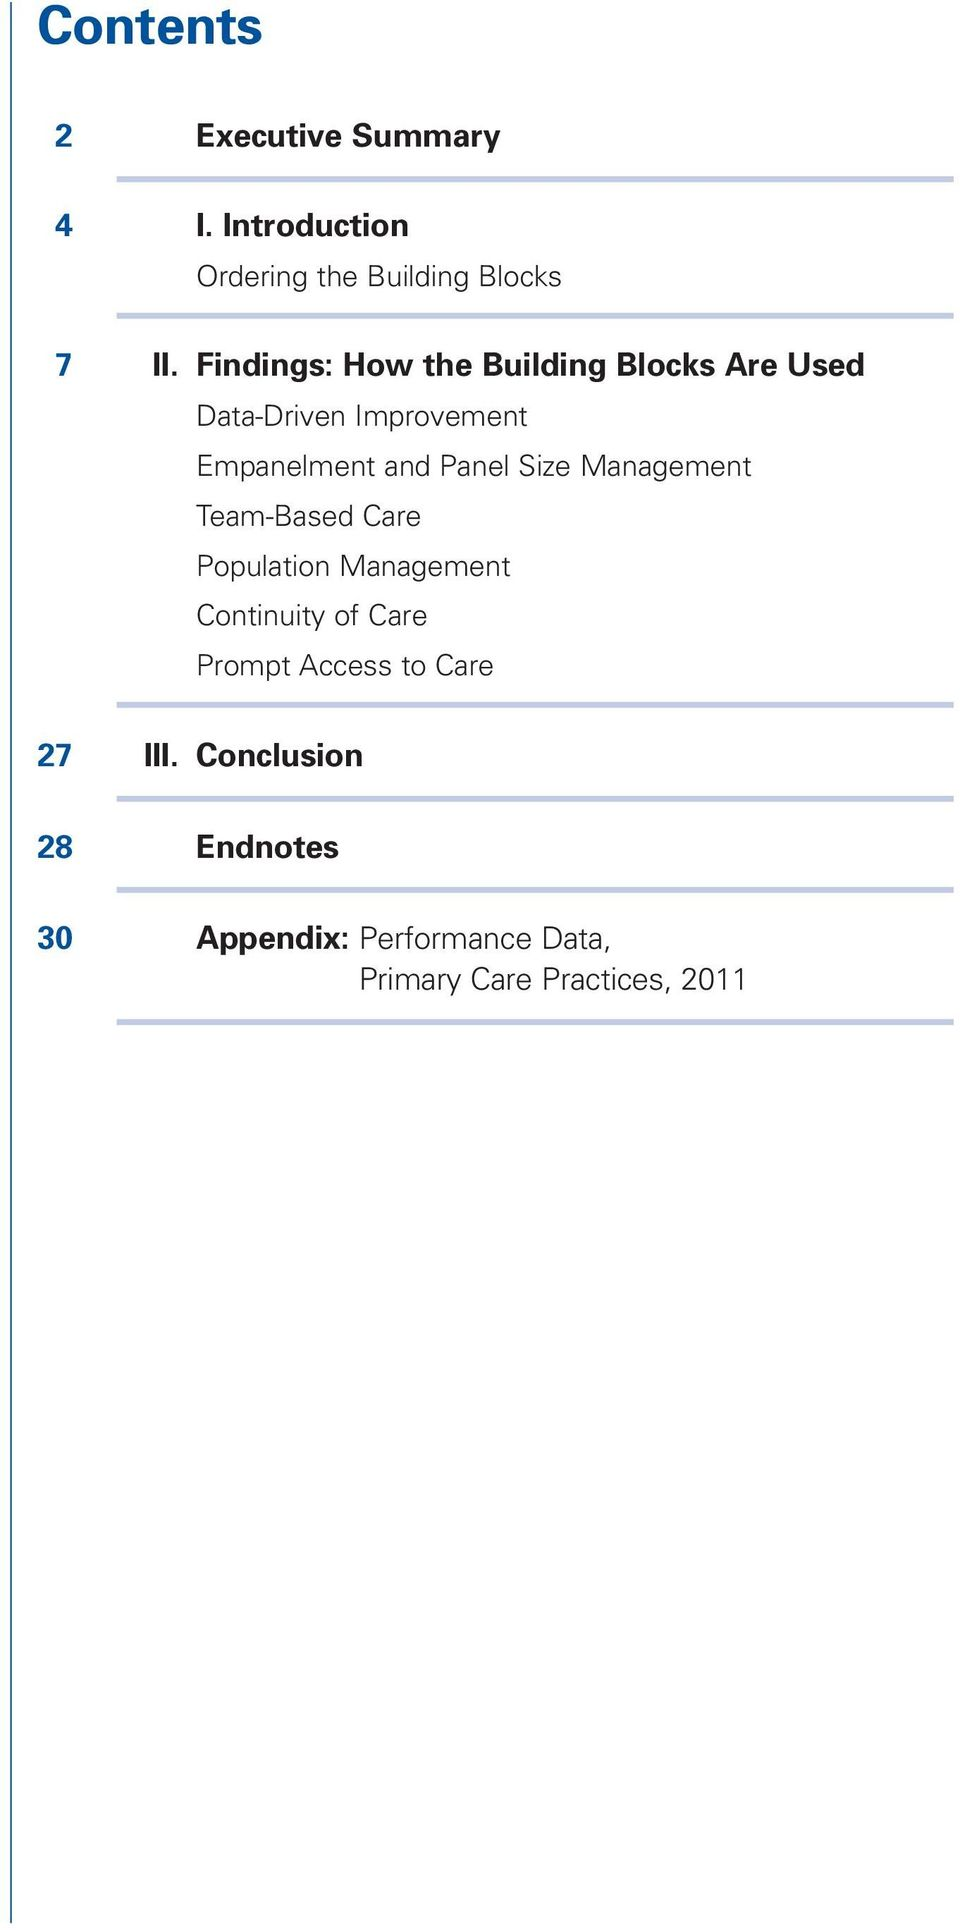 Size Management Team-Based Care Population Management Continuity of Care Prompt Access